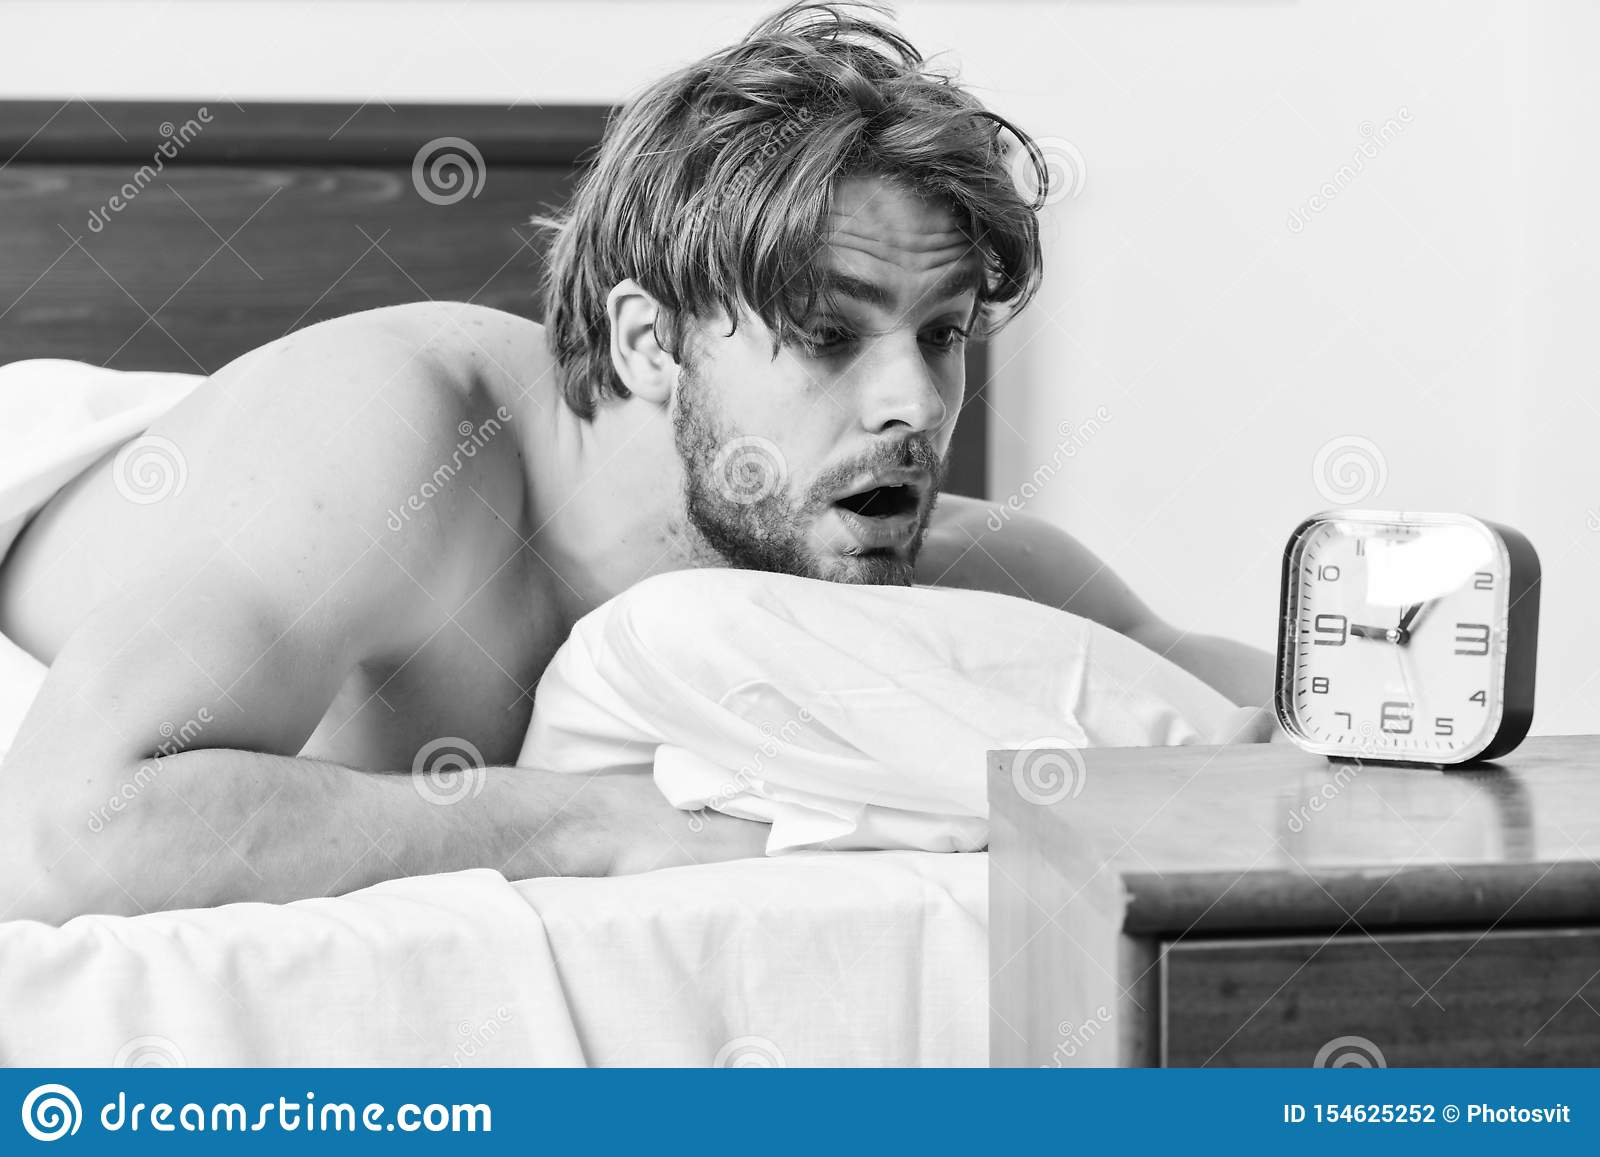 Picture Showing Young Man Stretching In Bed. Guy Is Lying